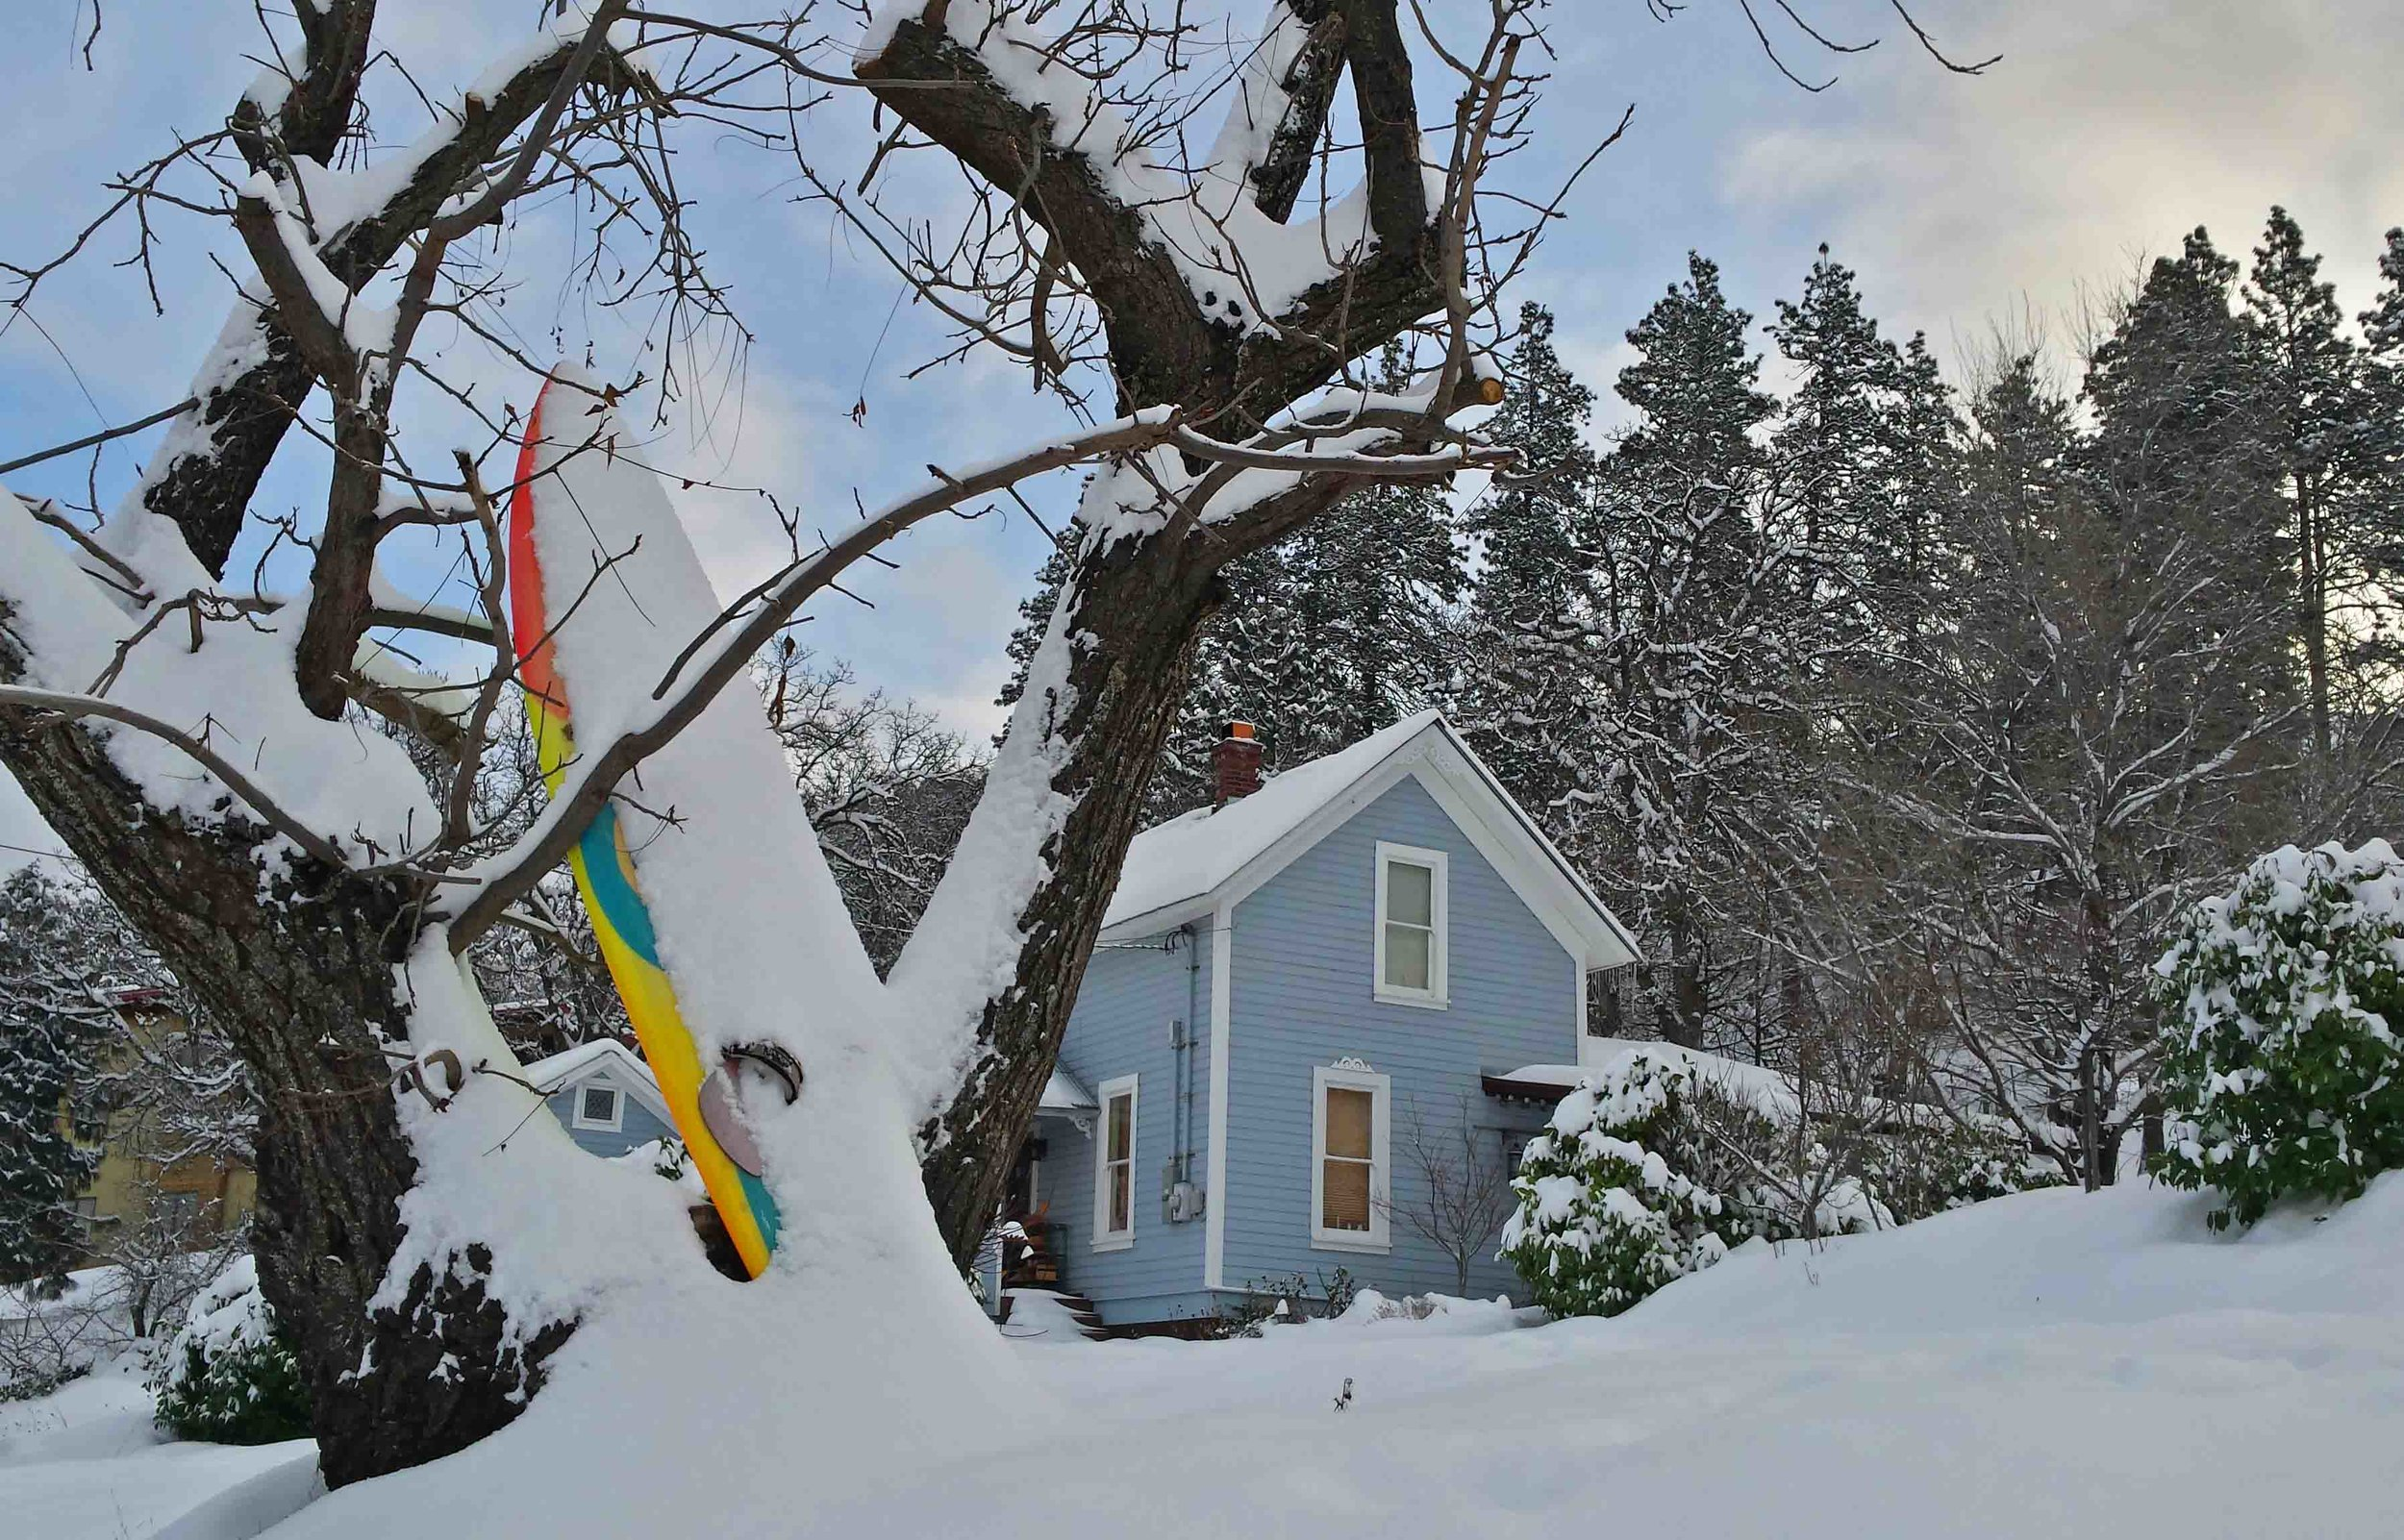 Our  Surf Dog Diaries  front yard this winter. Snowmeggadon!                                                     Photo (c) Barb Ayers, DogDiary.org